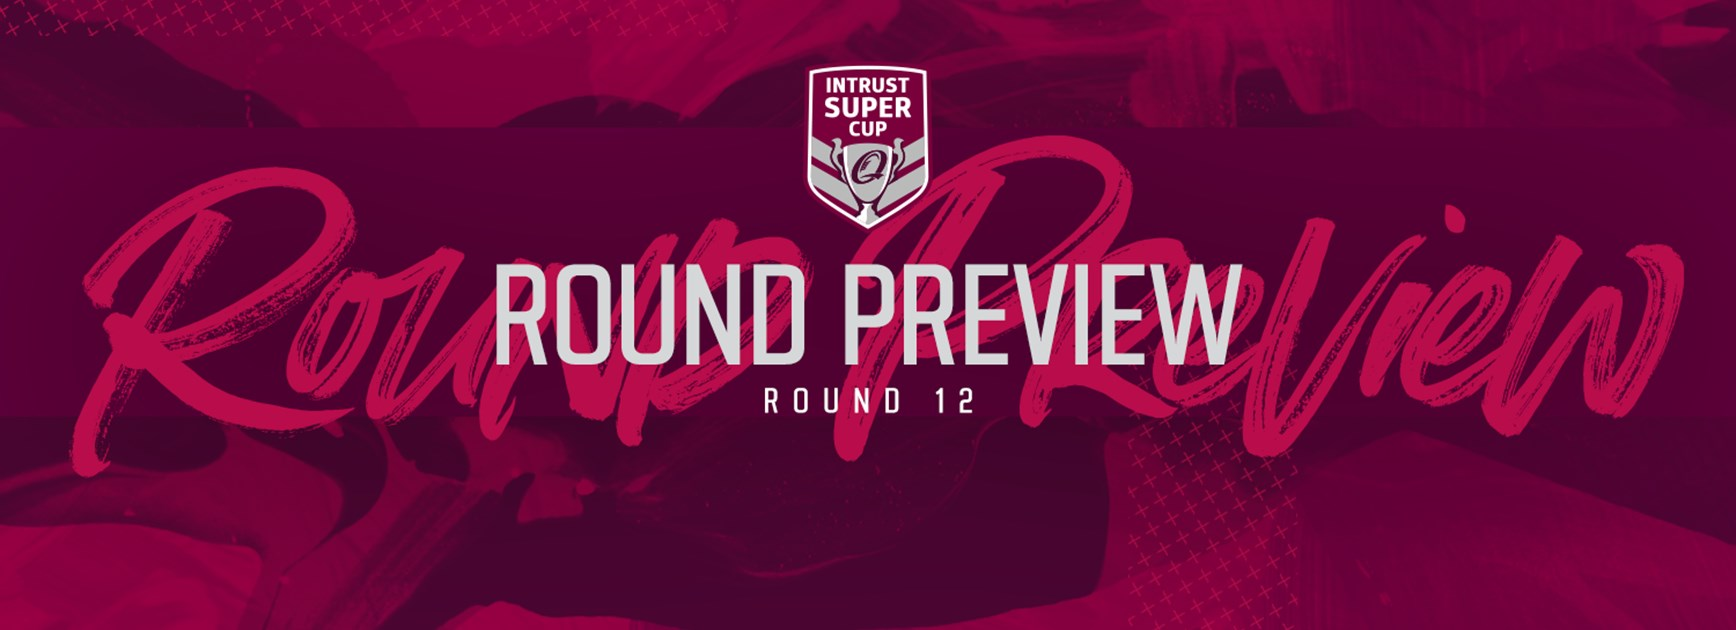 Intrust Super Cup Round 12 preview